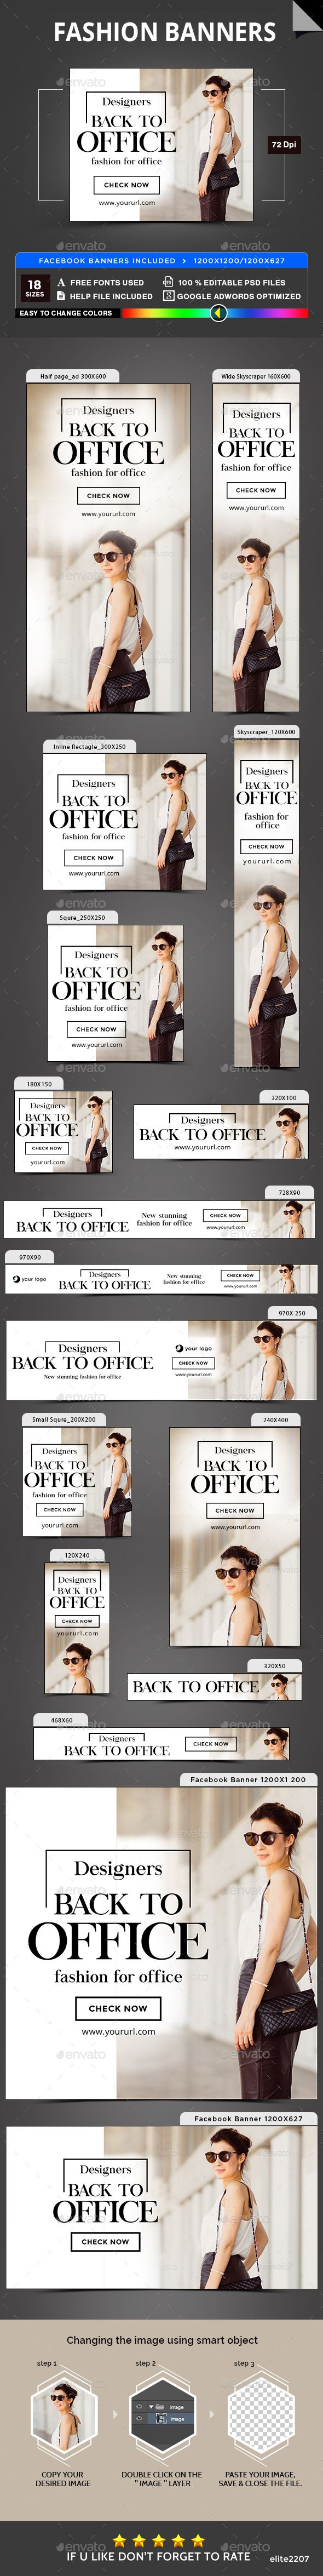 Fashion Banners - #Banners & #Ads #Web Elements Download here: https://graphicriver.net/item/fashion-banners/19753975?ref=alena994